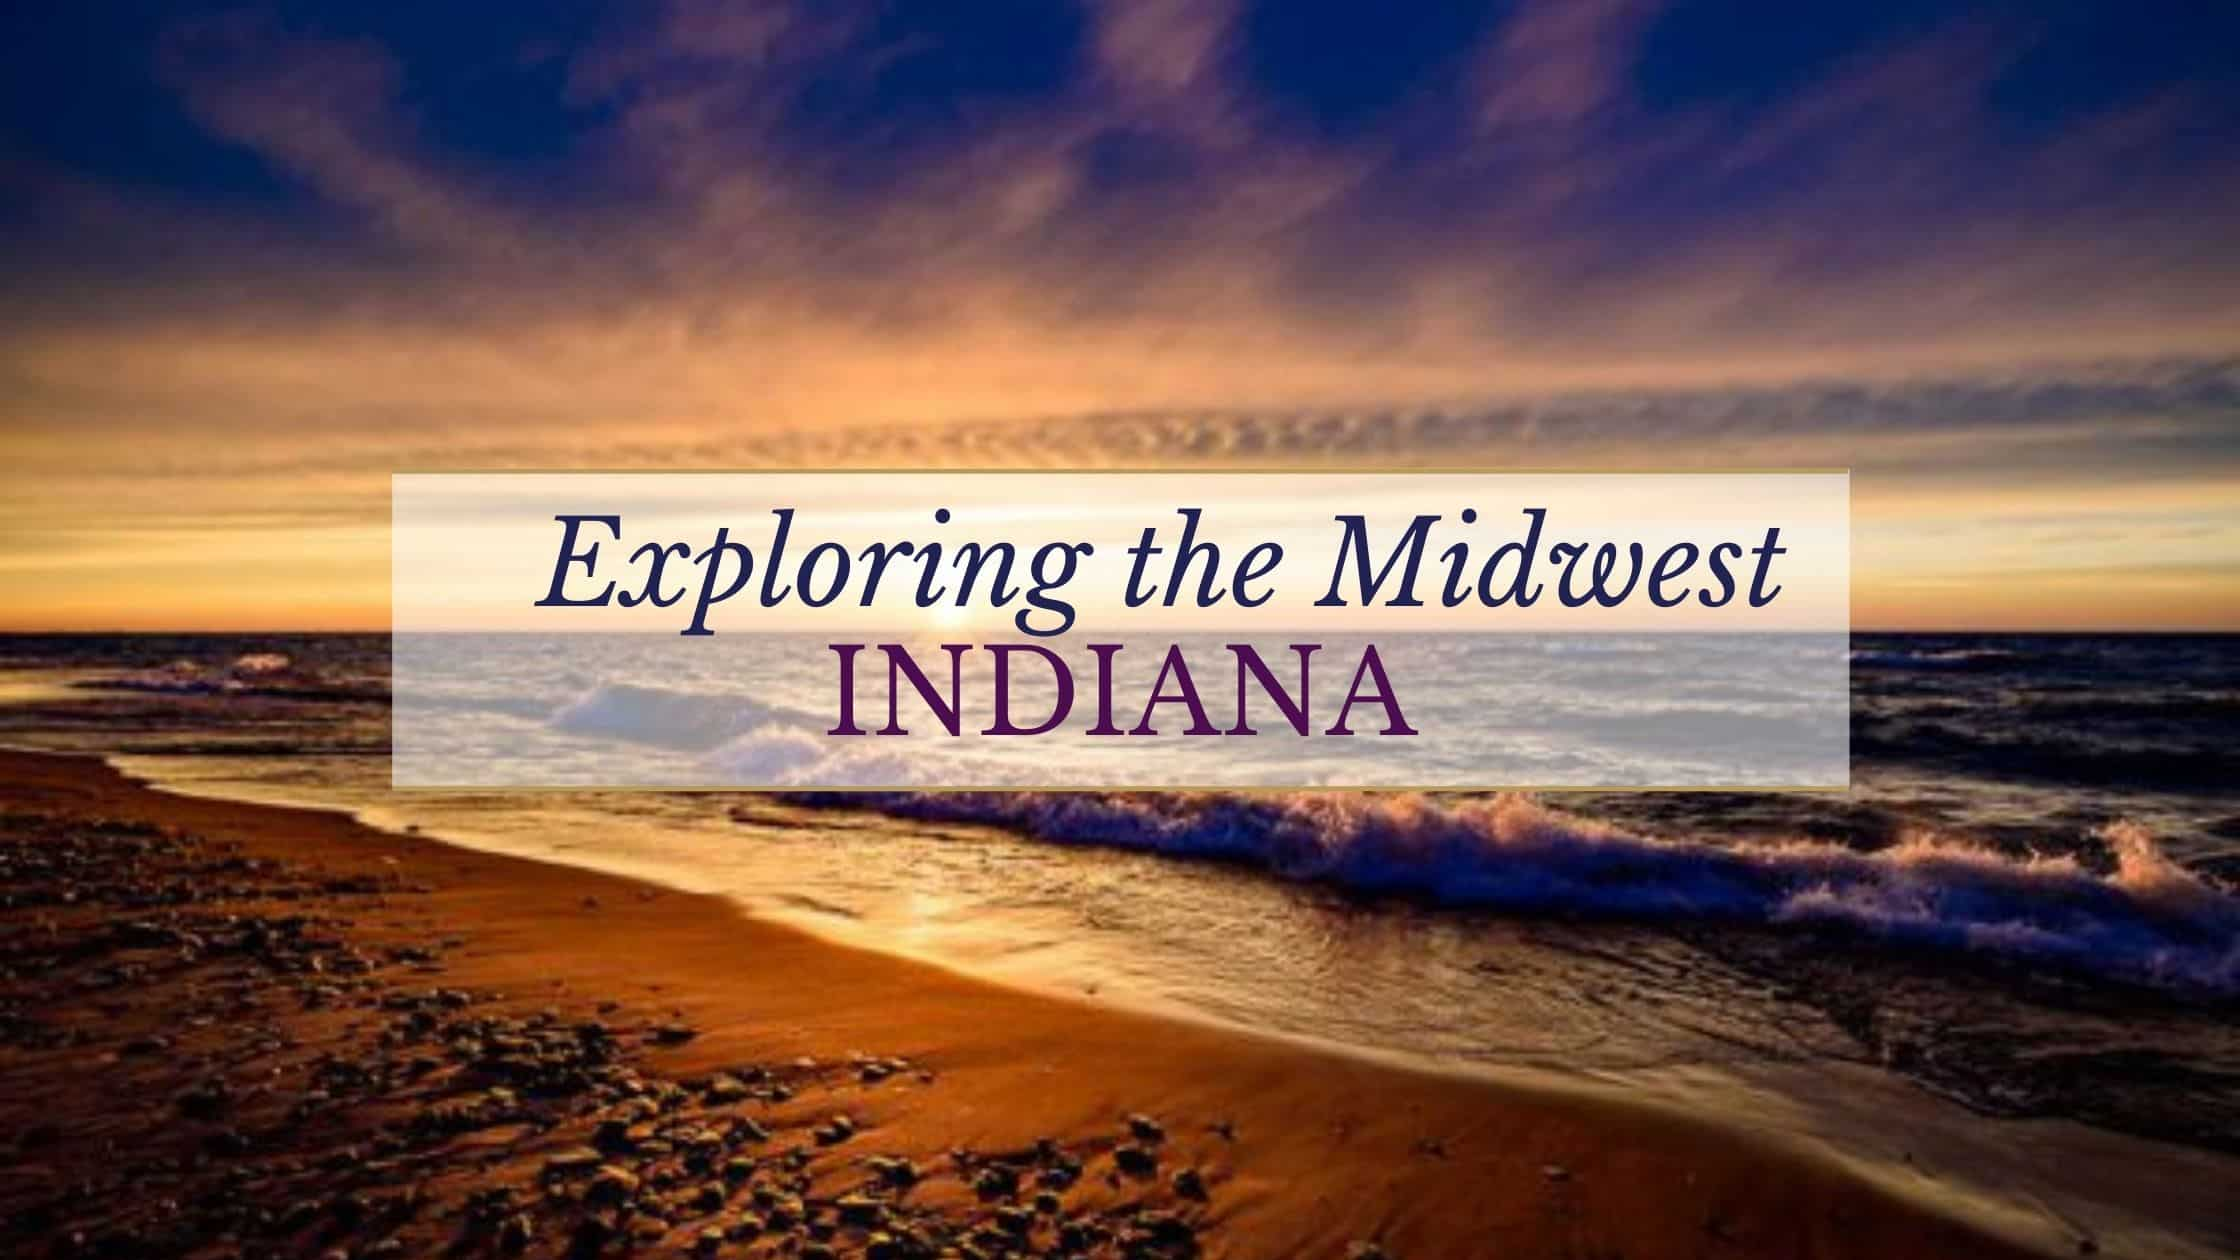 Visit Indiana | Exploring the Midwest Episode 3